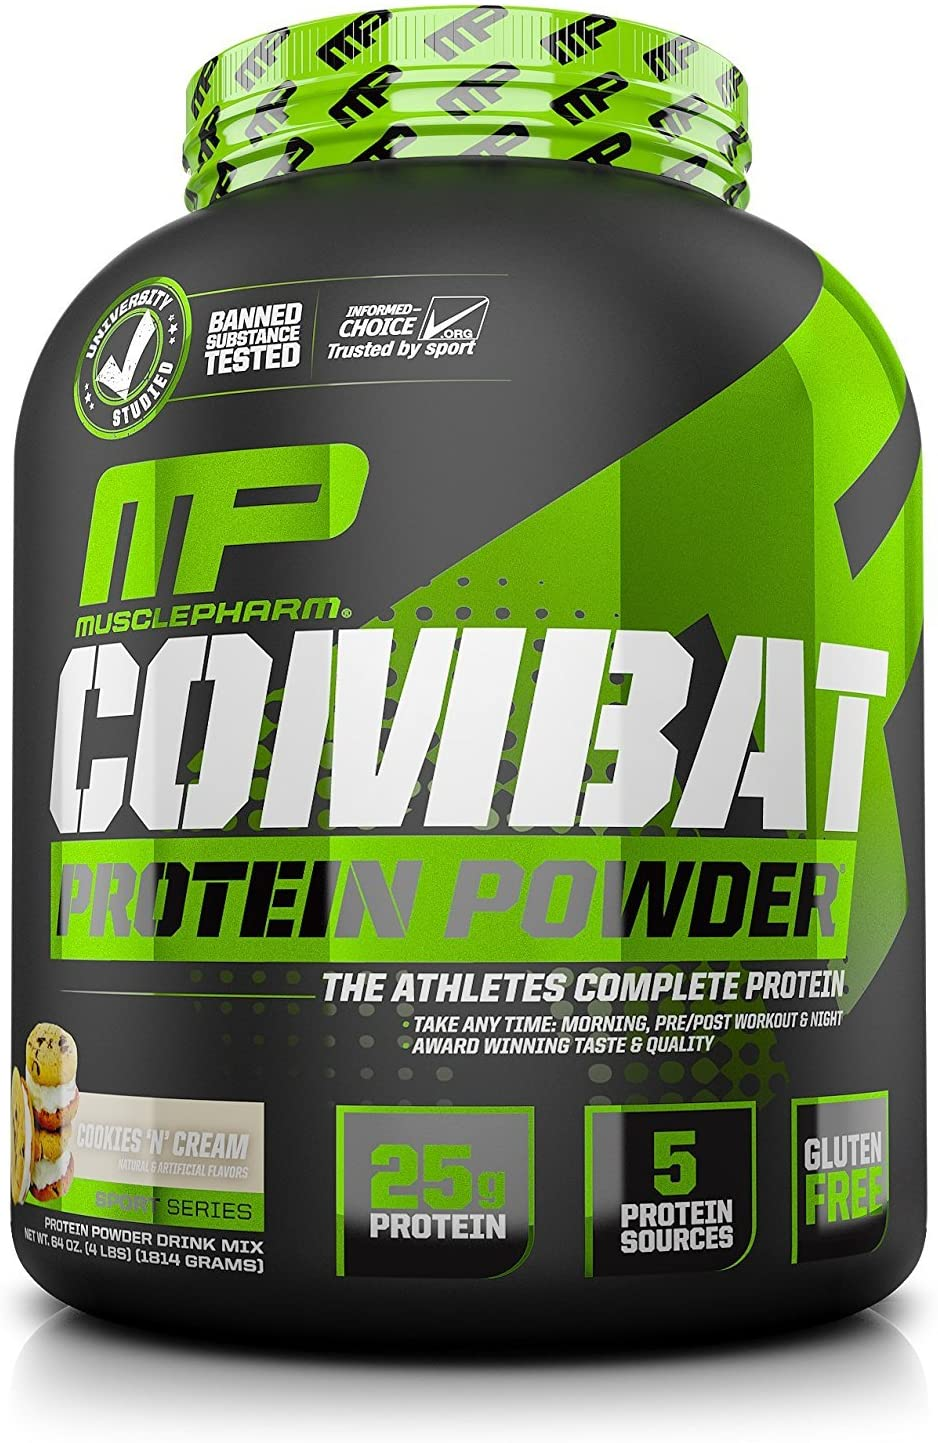 MusclePharm Combat Protein Powder, 5 Protein Blend, Cookies N Cream, 4 Pounds, 52 Servings